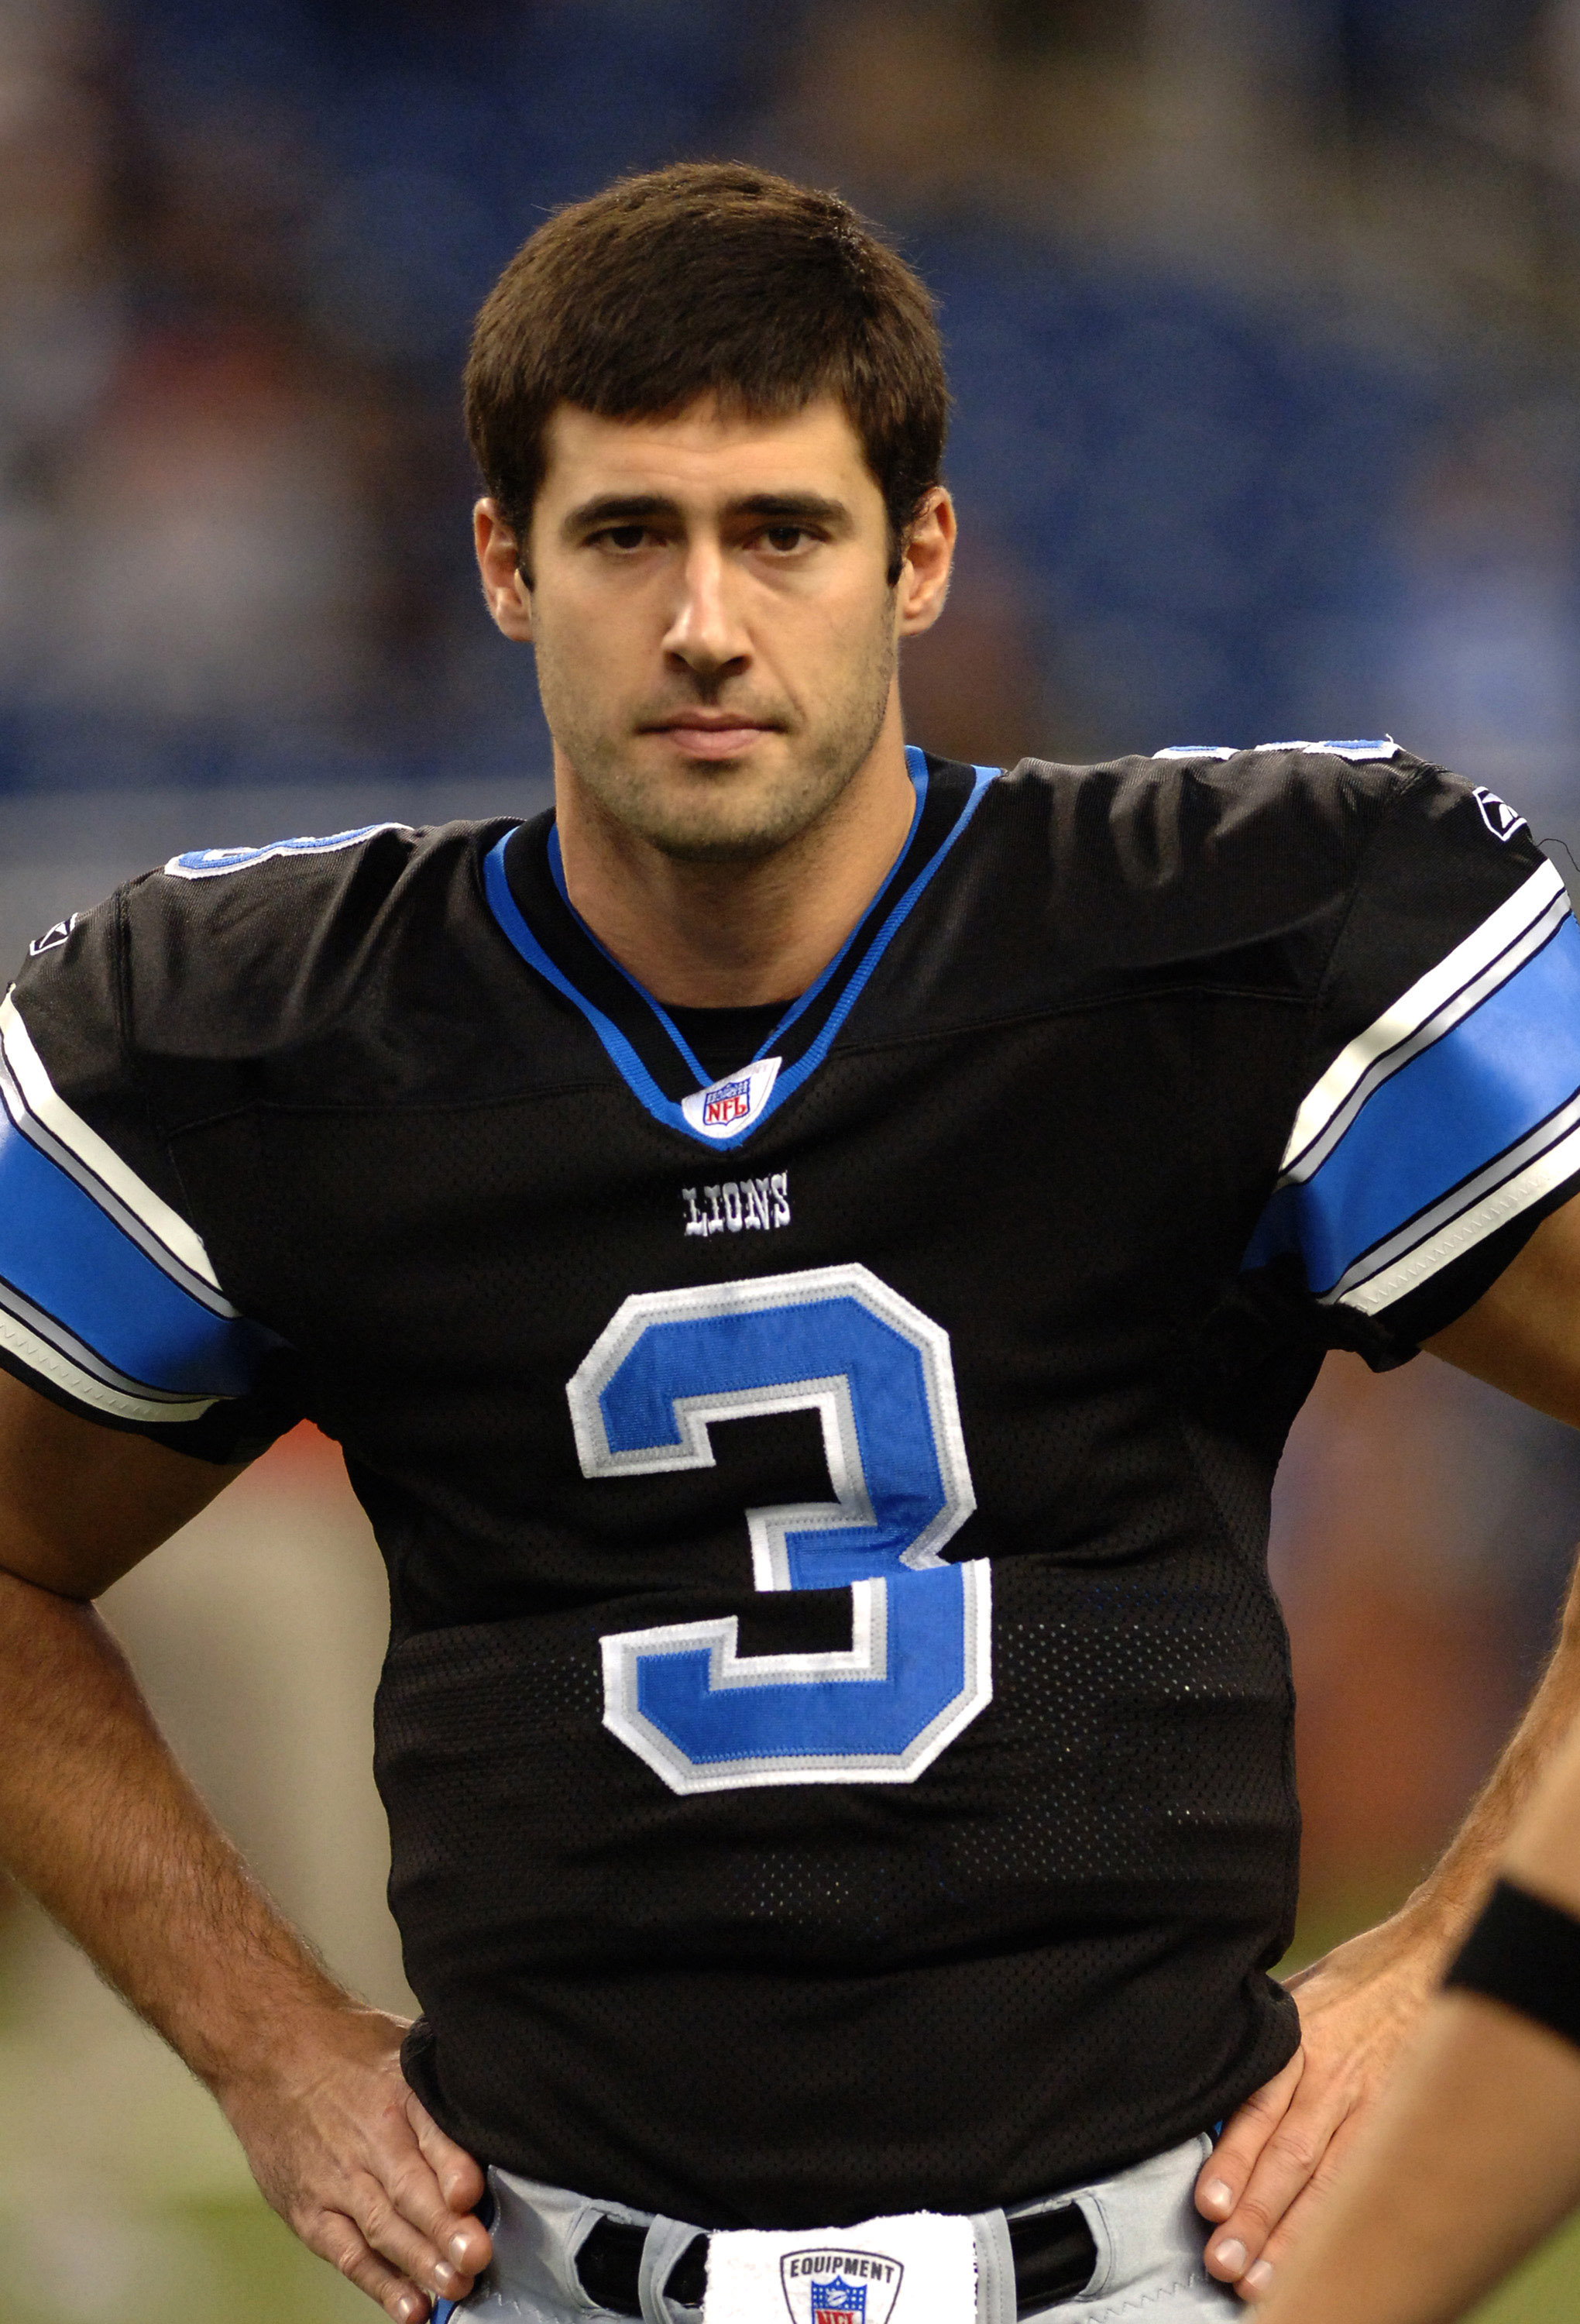 Detroit Lions quarterback Joey Harrington watches play in a Thanksgiving Day game, November 24, 2005, at Ford Field, Detroit.  The Atlanta Falcons defeated the Lions 27 - 7.  (Photo by Al Messerschmidt/Getty Images)